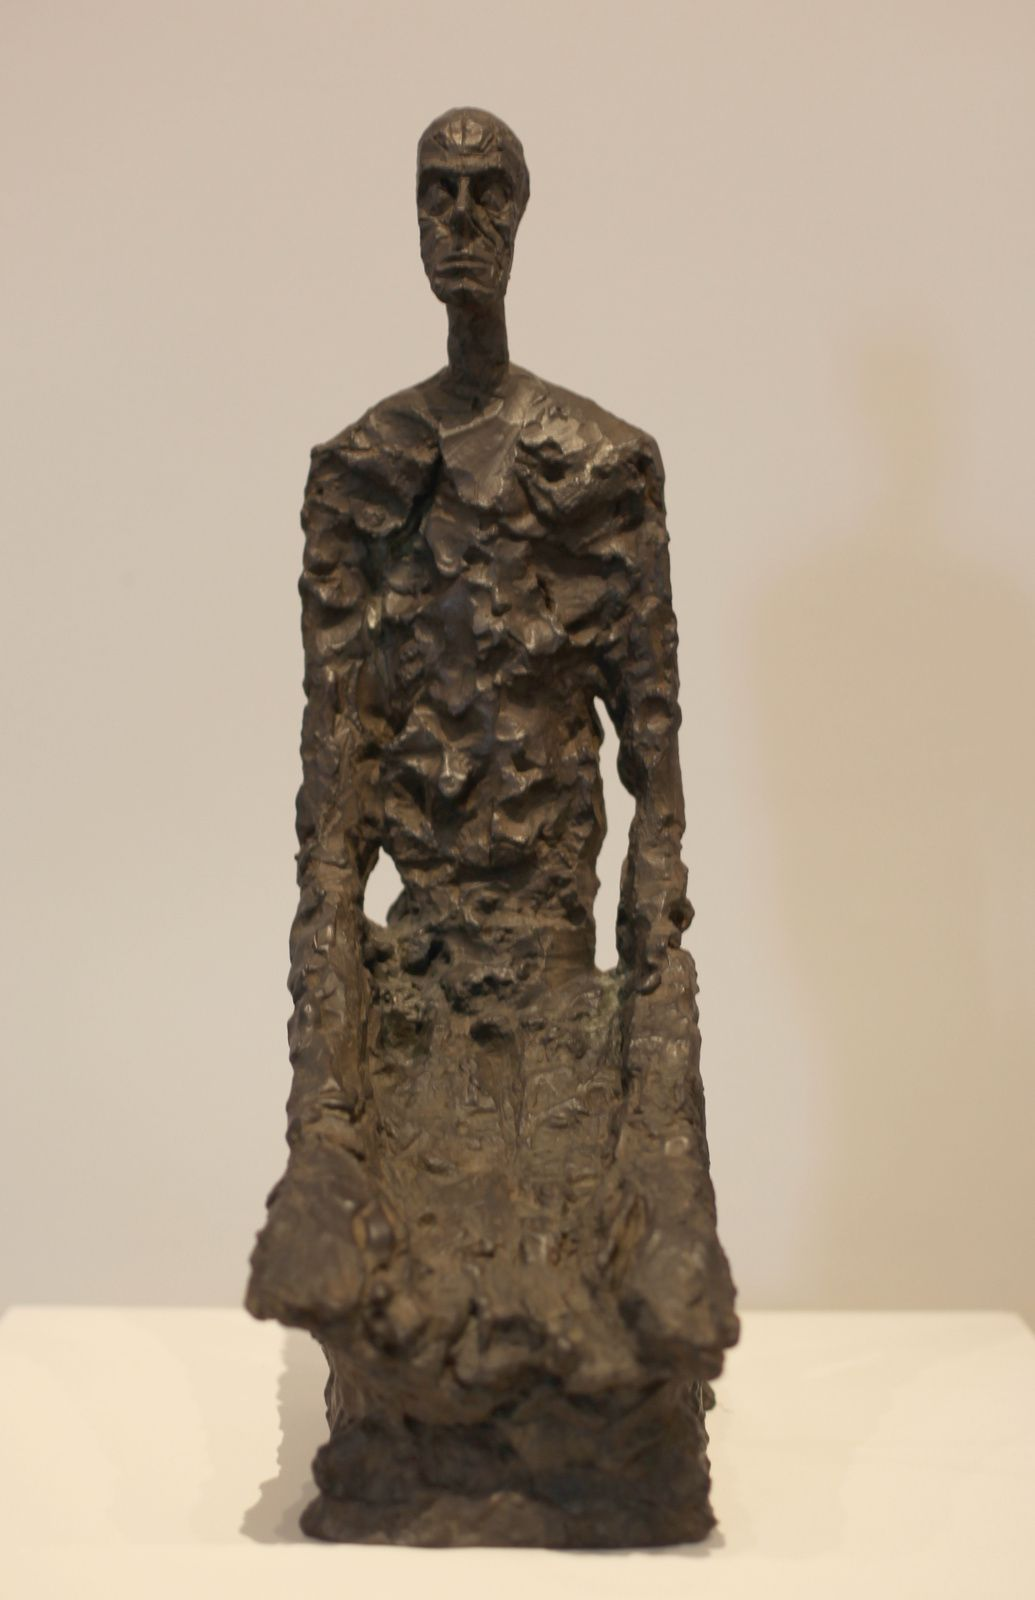 """Homme à mi-corps"", 1965 d'Alberto GIACOMETTI - Courtesy Fondation Giacometti, Paris © Photo Éric Simon"